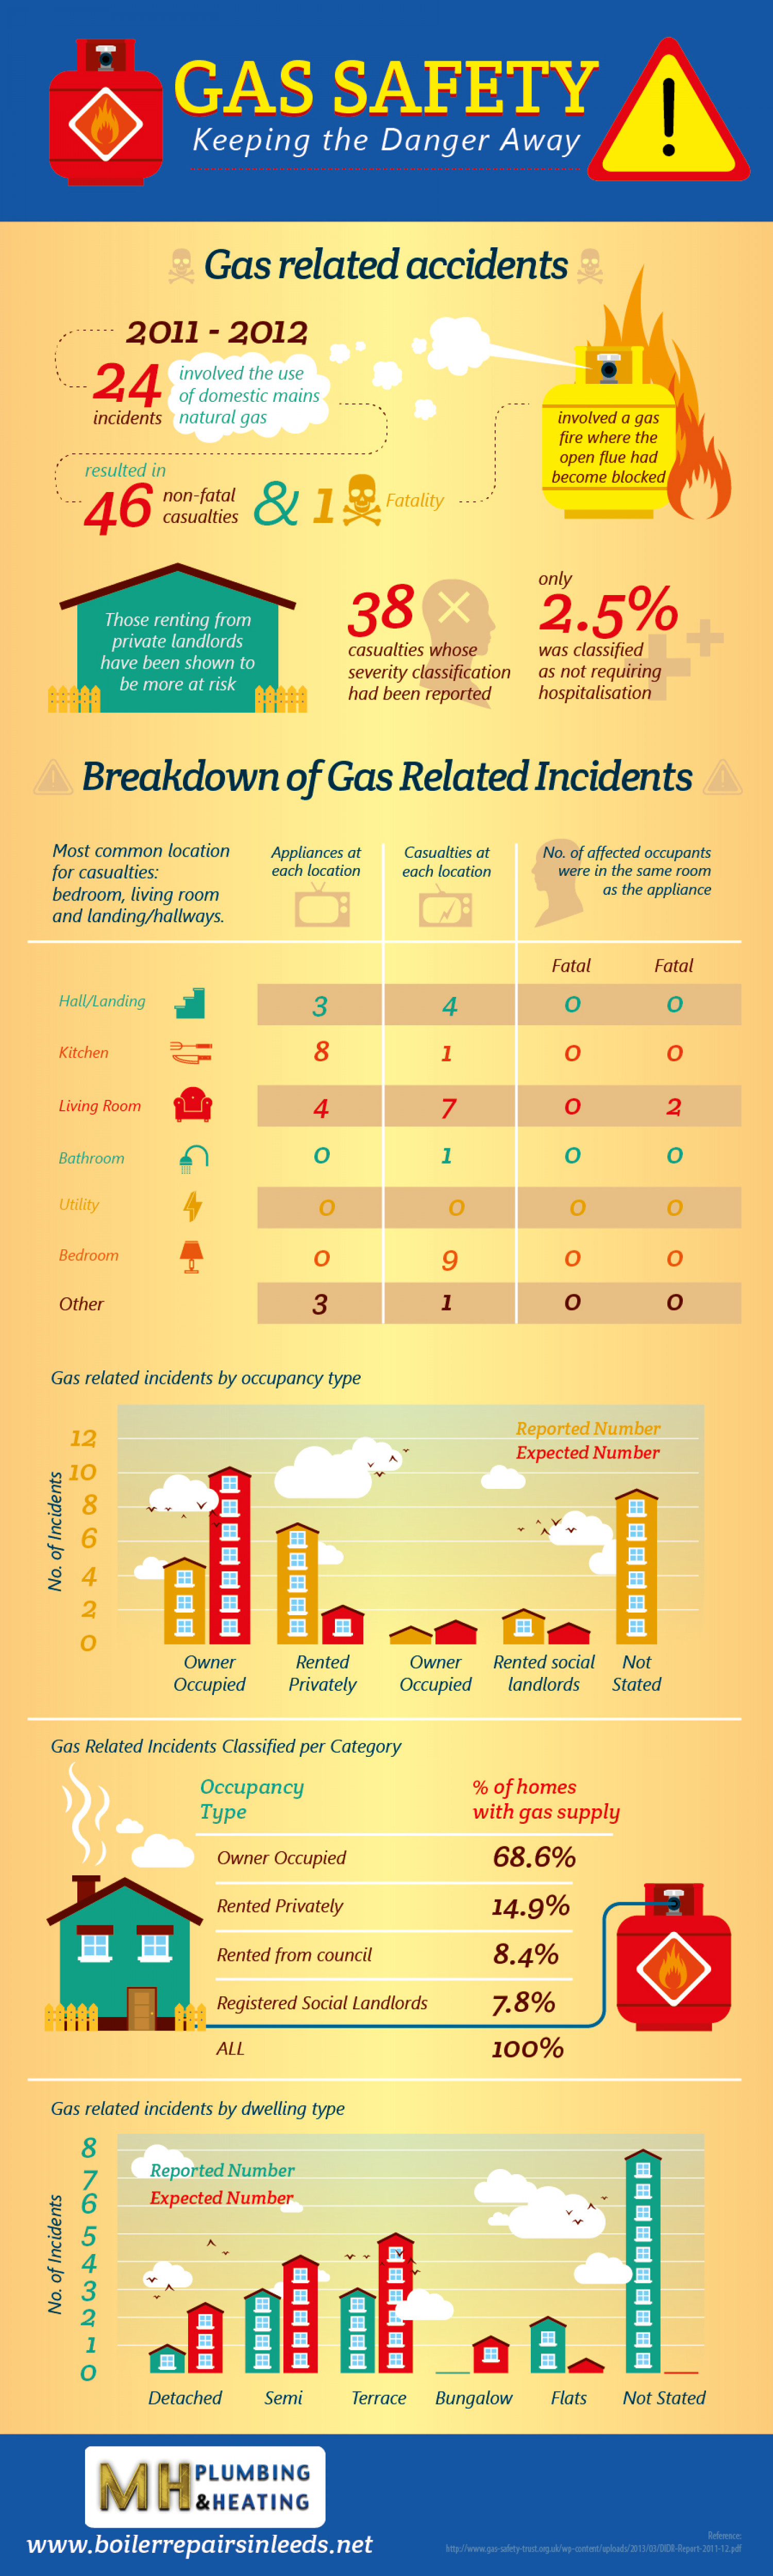 Gas Safety: Keeping the Danger Away Infographic